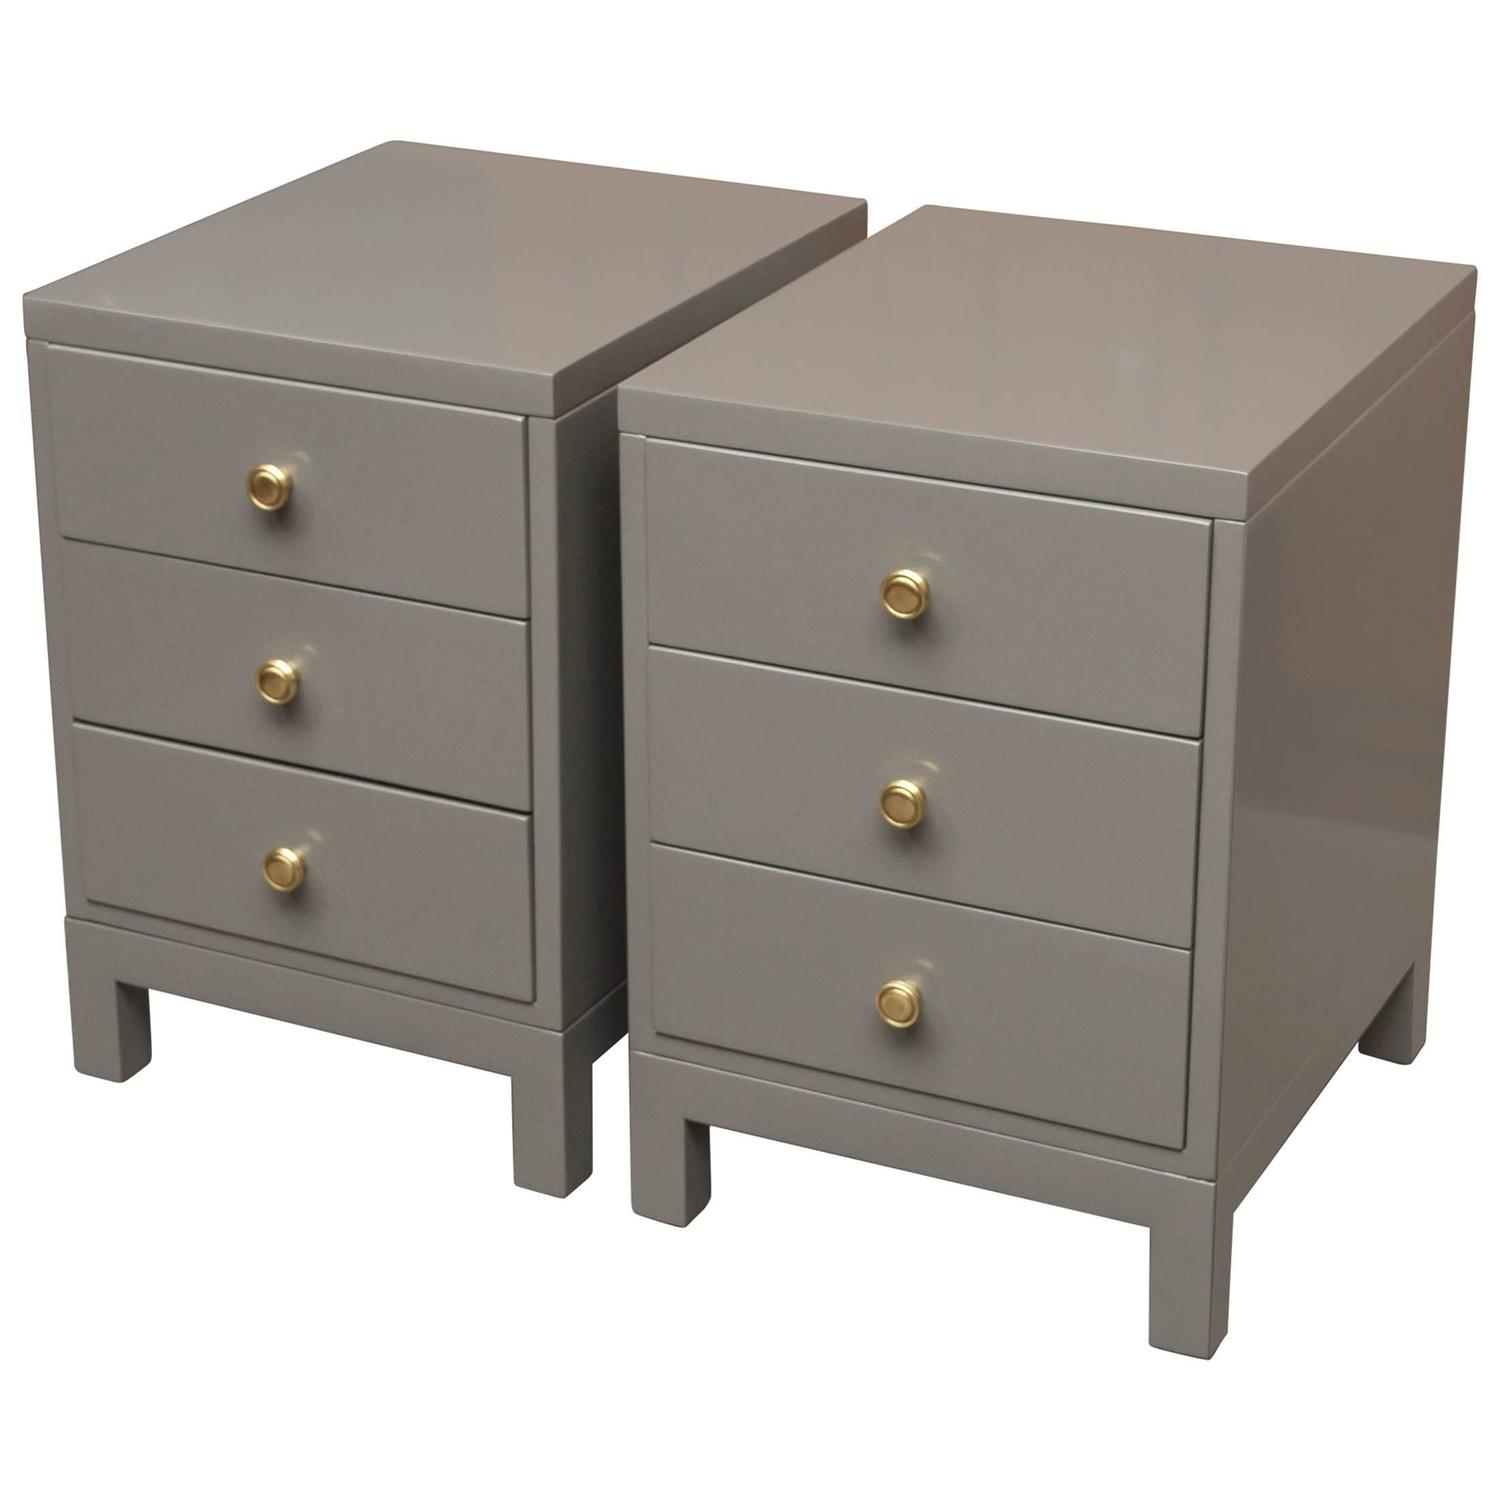 Widdicomb Grey Lacquer Nightstands At 1stdibs